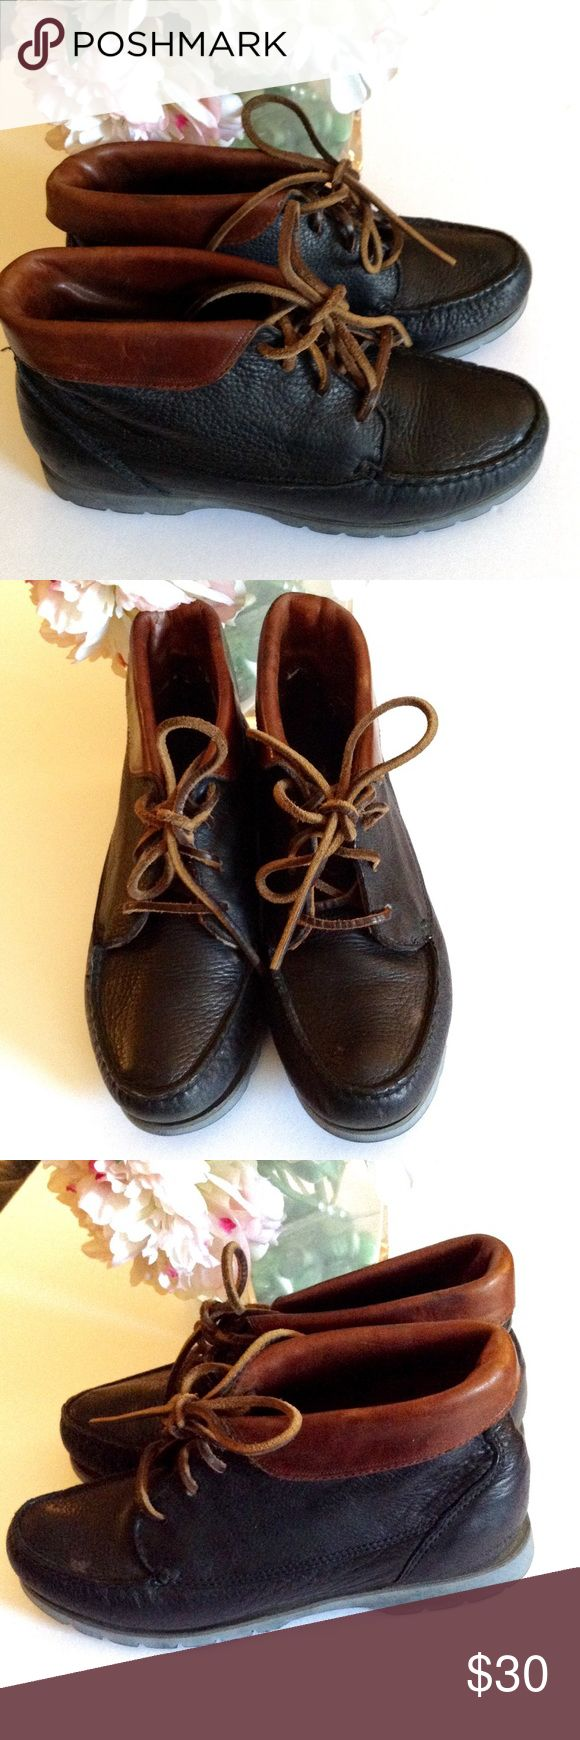 Vintage Timberland Ankle Boots - Waterproof EUC  They state they are waterproof  Minor wear Spot on top in photos has been removed Leather Timberland Shoes Ankle Boots & Booties